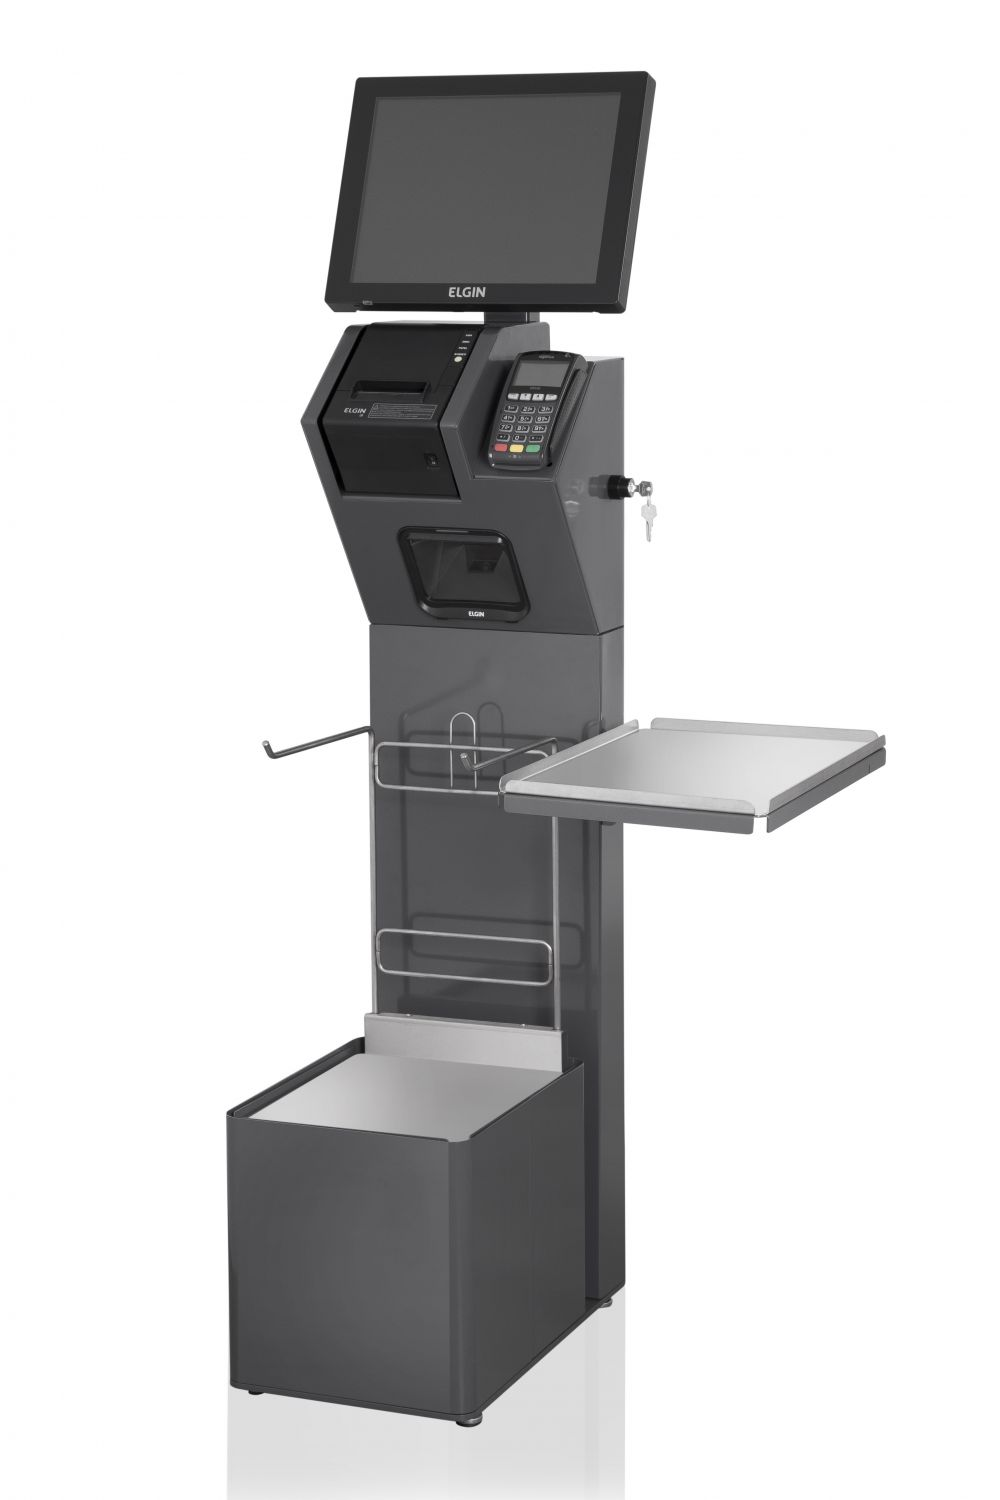 Terminal autoatendimento Self-checkout